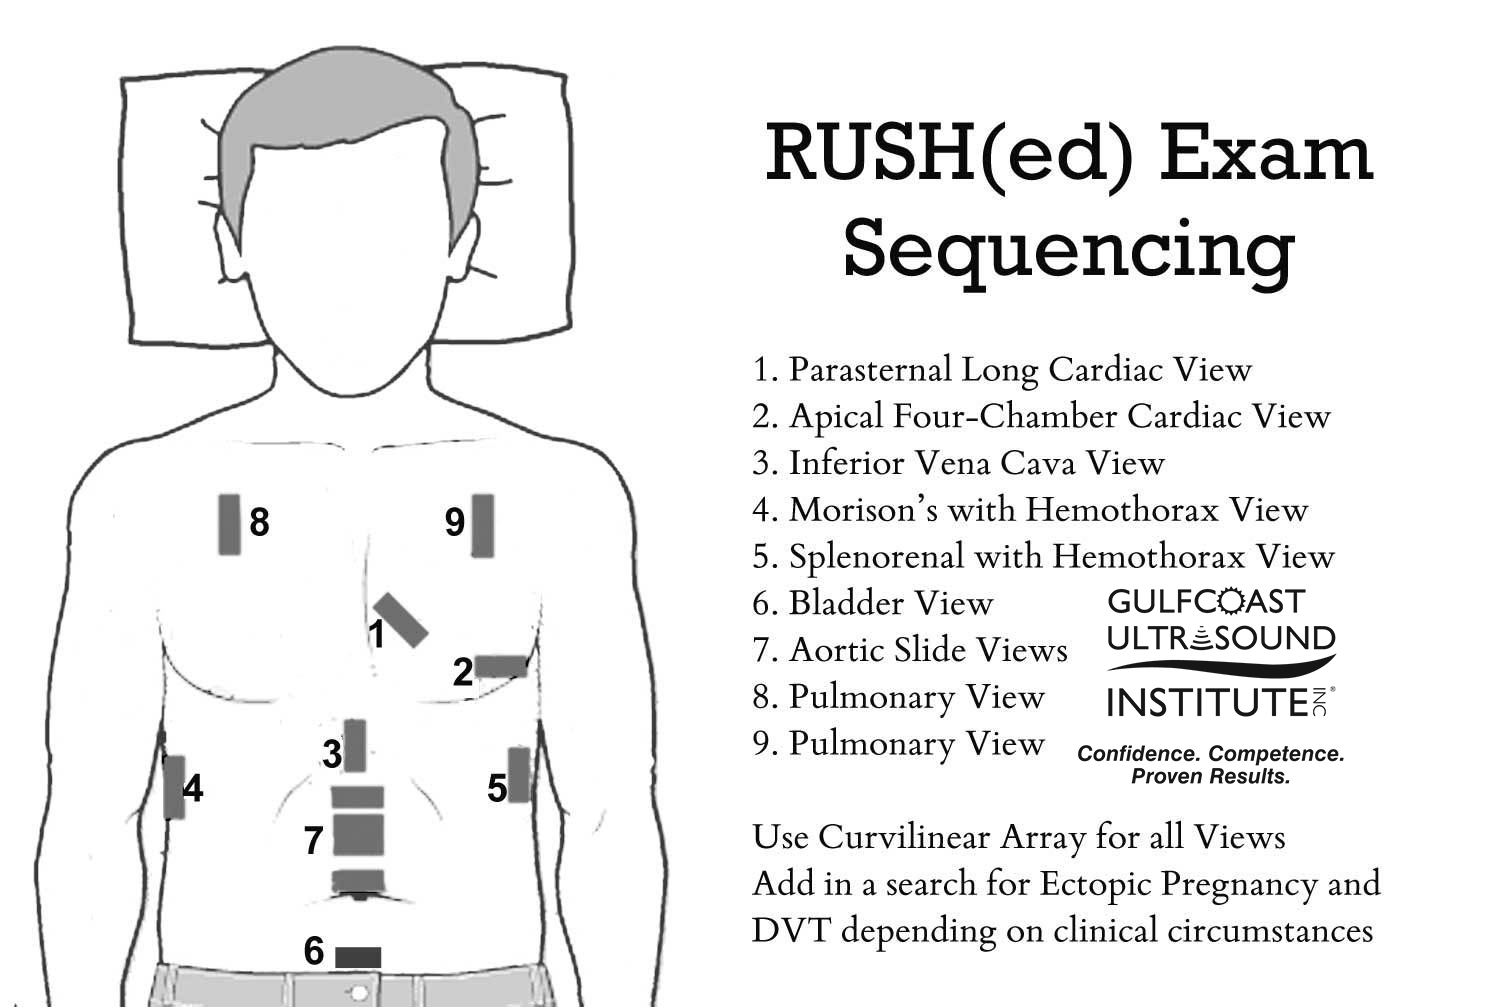 Rapid Ultrasound for Shock & Hypotension (RUSH): A systematic approach to evaluating patients presenting to the ED with undifferentiated hypotension